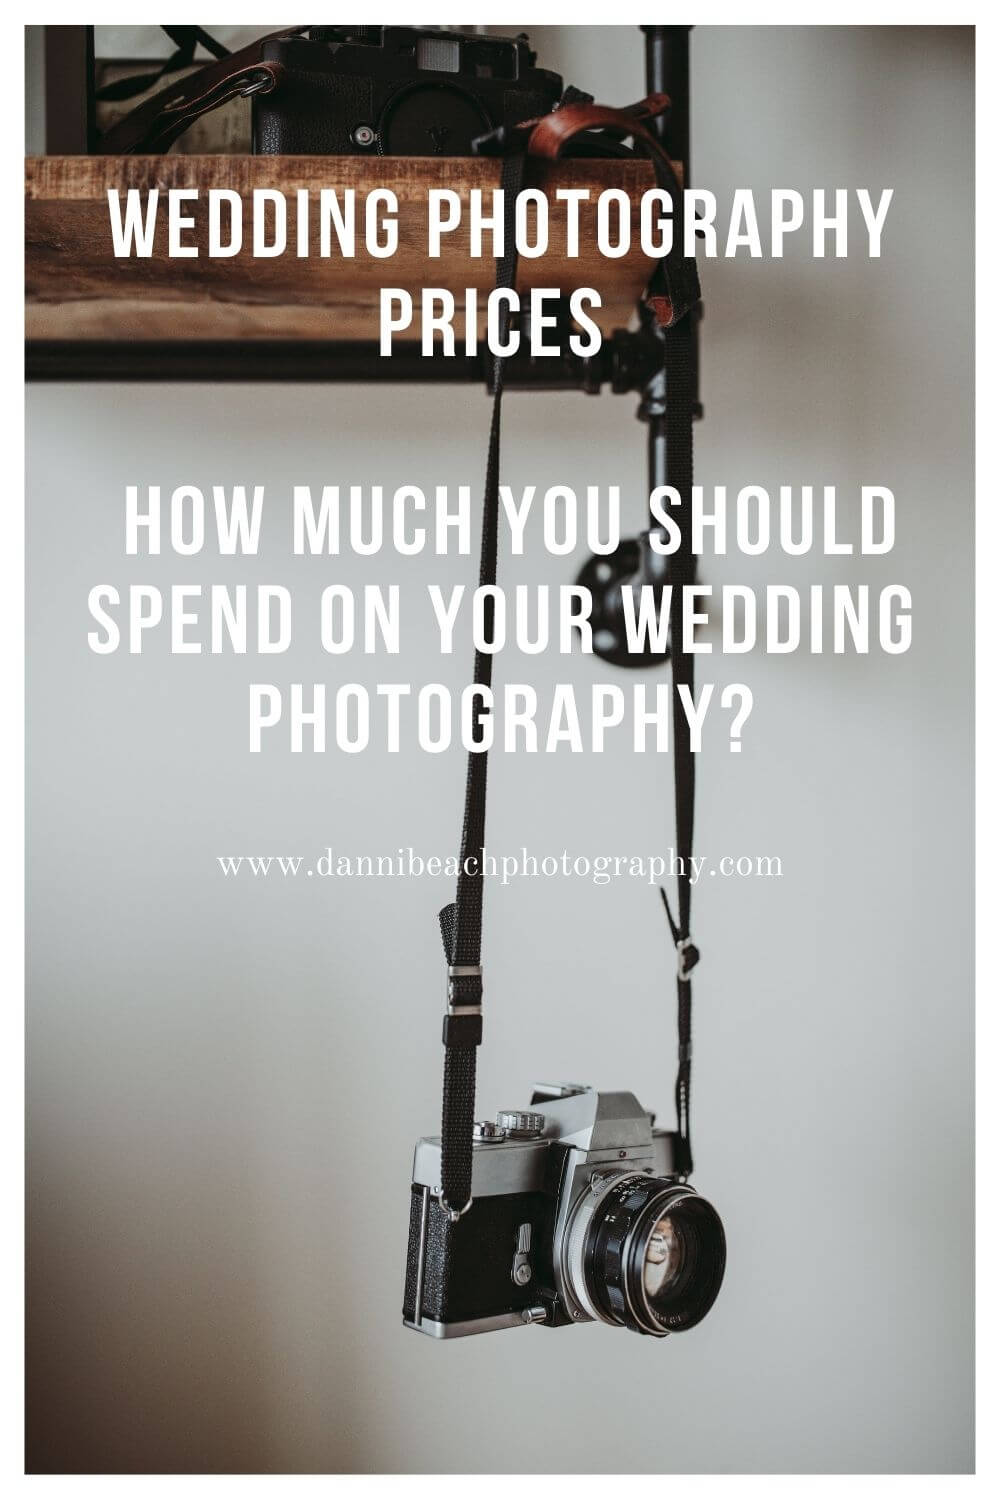 How much should you pay for wedding photography